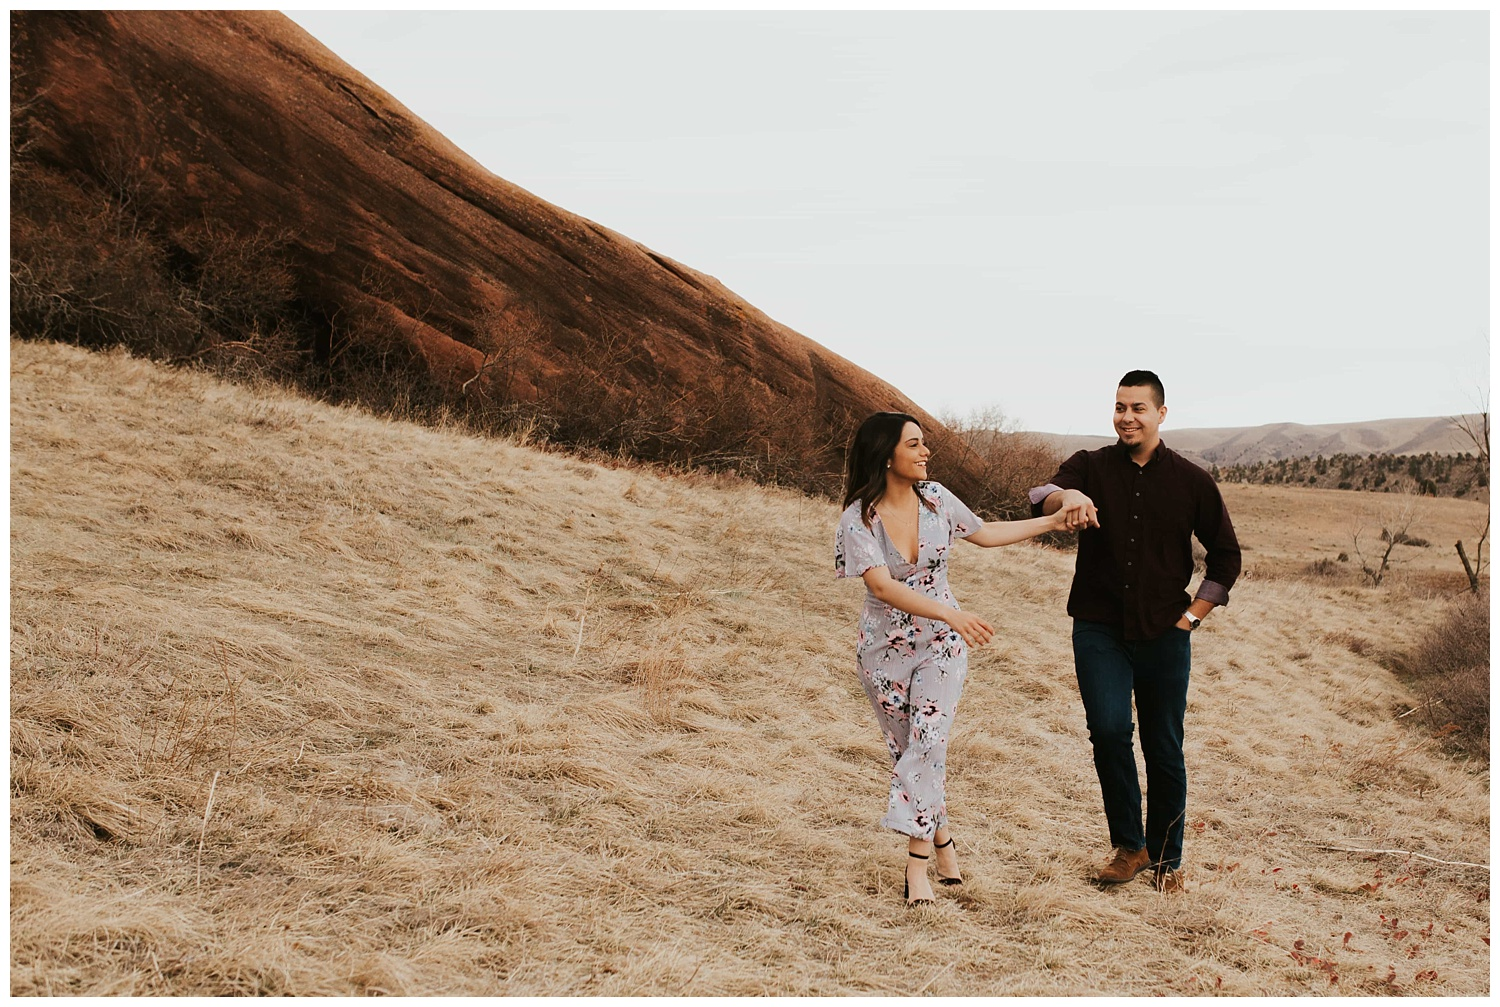 Meredith_Soy_Photography_Red_Rocks_Photographer_0014.jpg